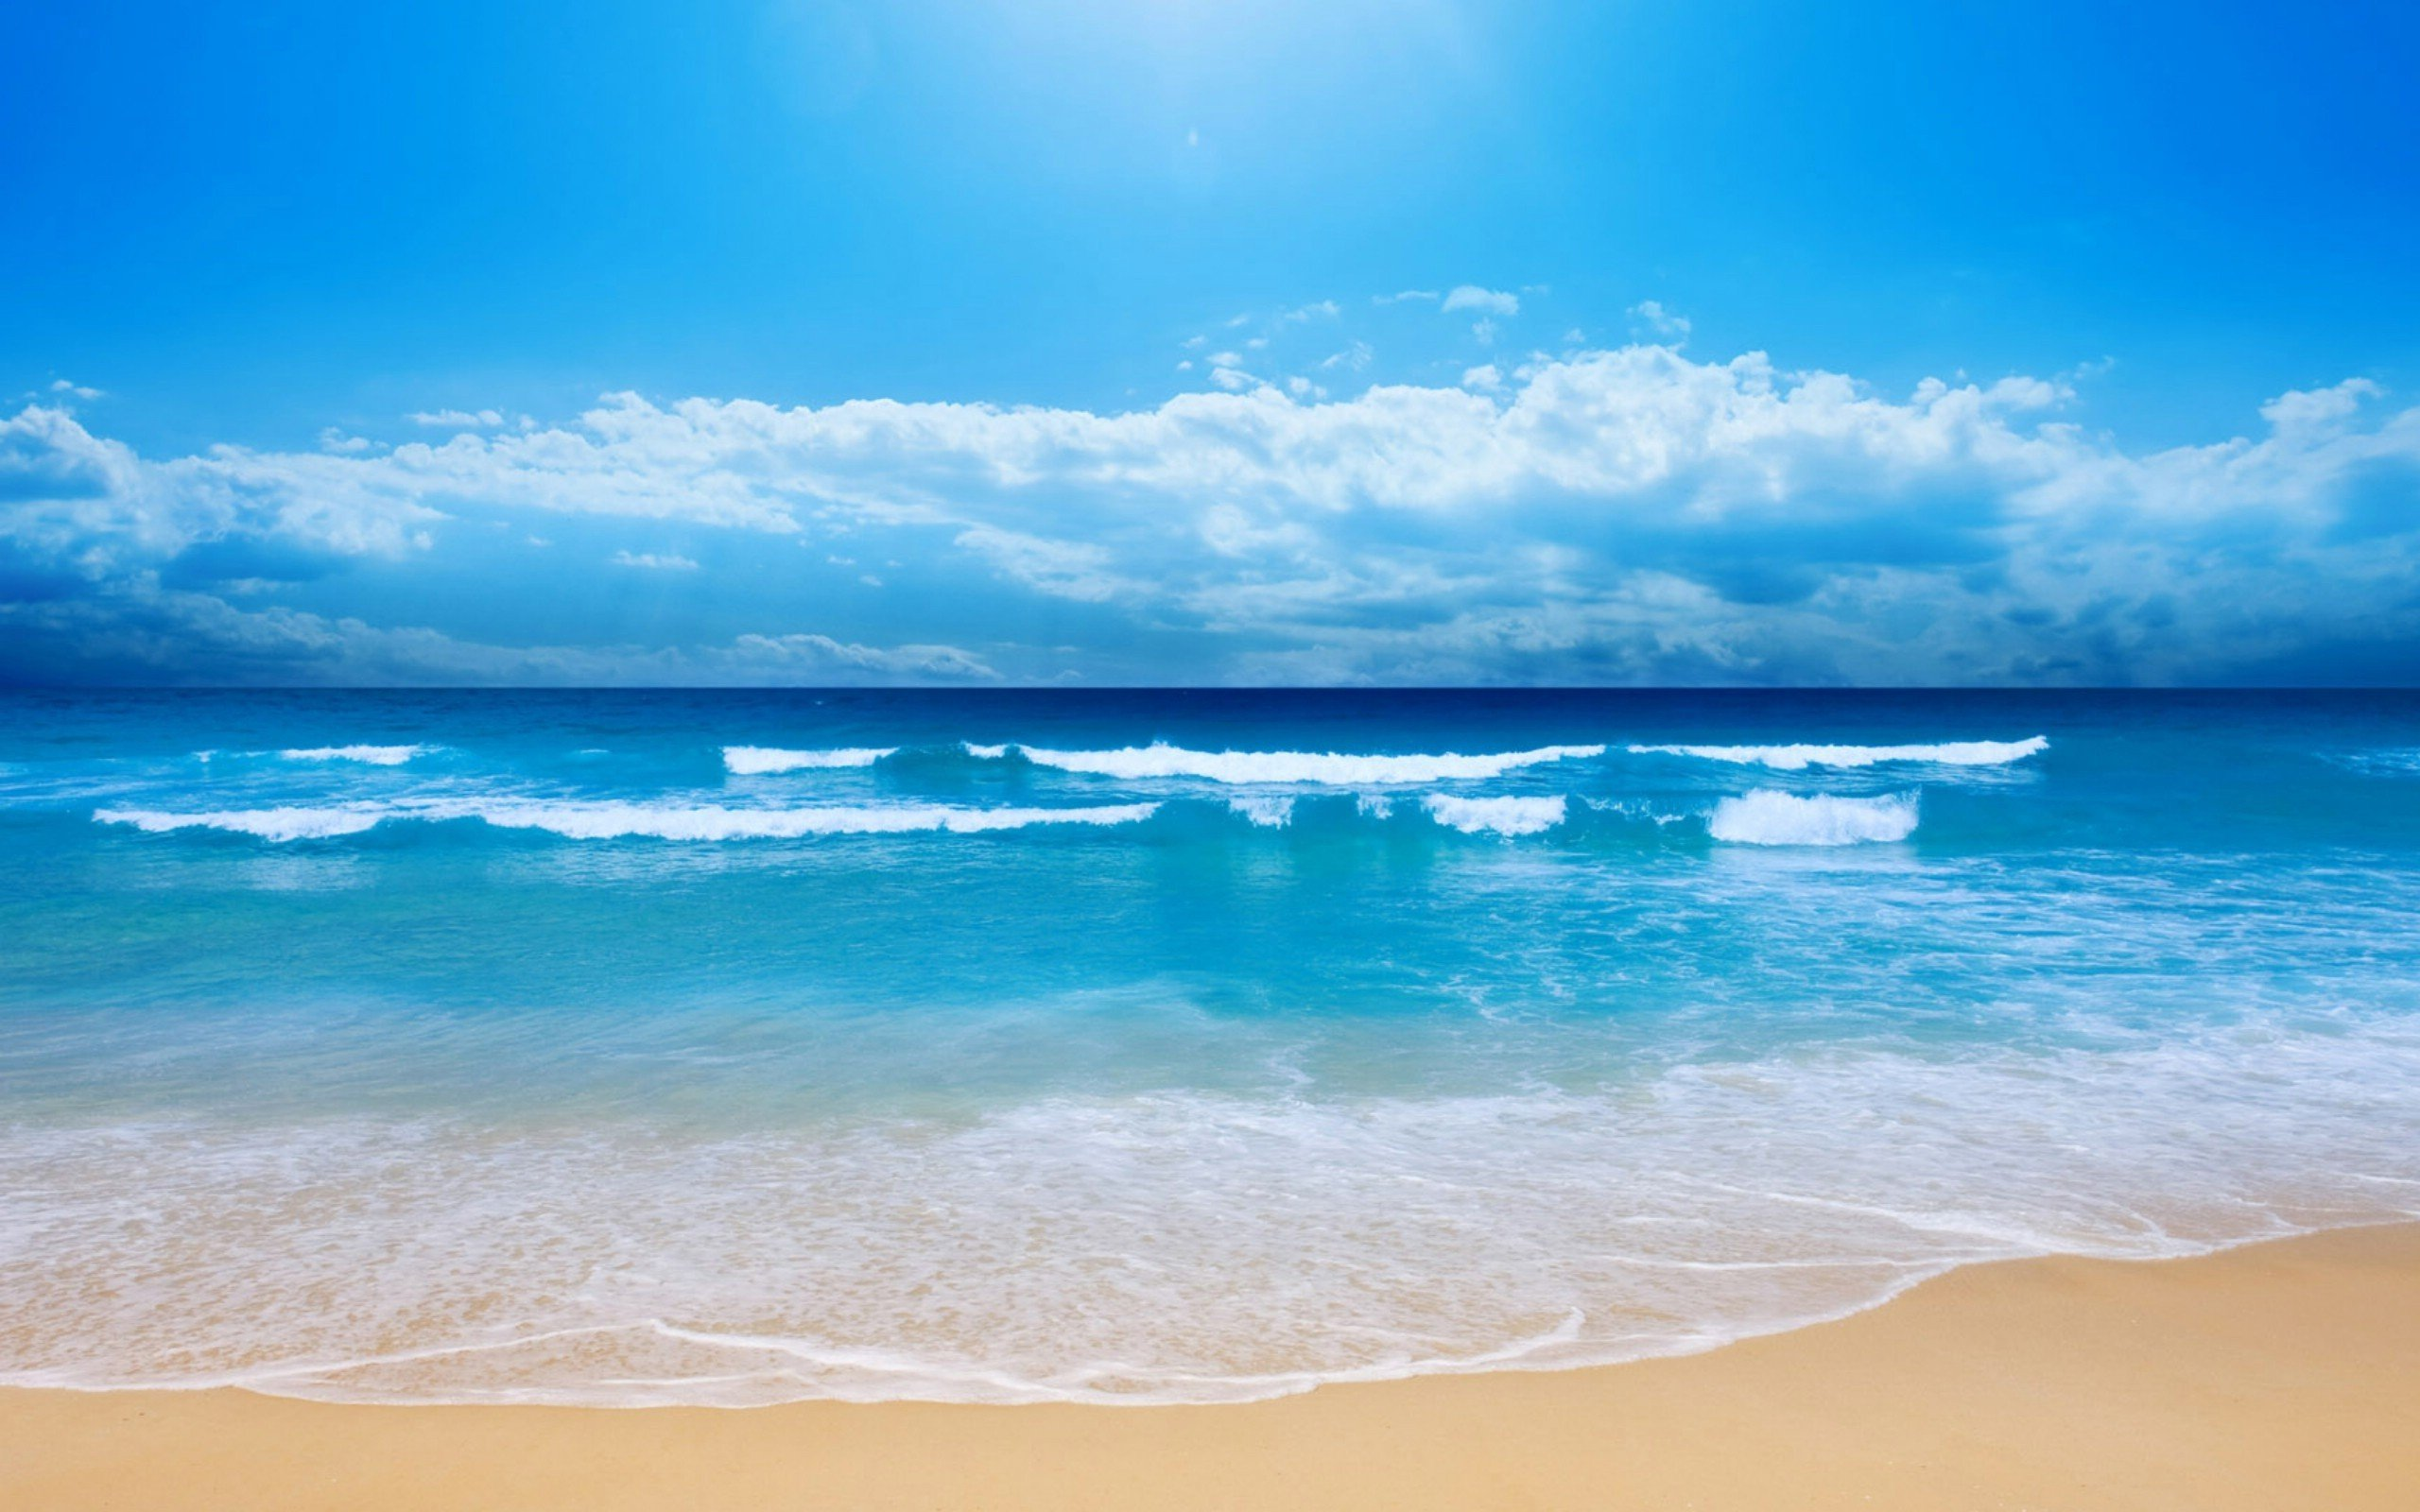 Blue Ocean Wallpaper 2560x1600 Blue Ocean Clouds Landscapes Nature 2560x1600